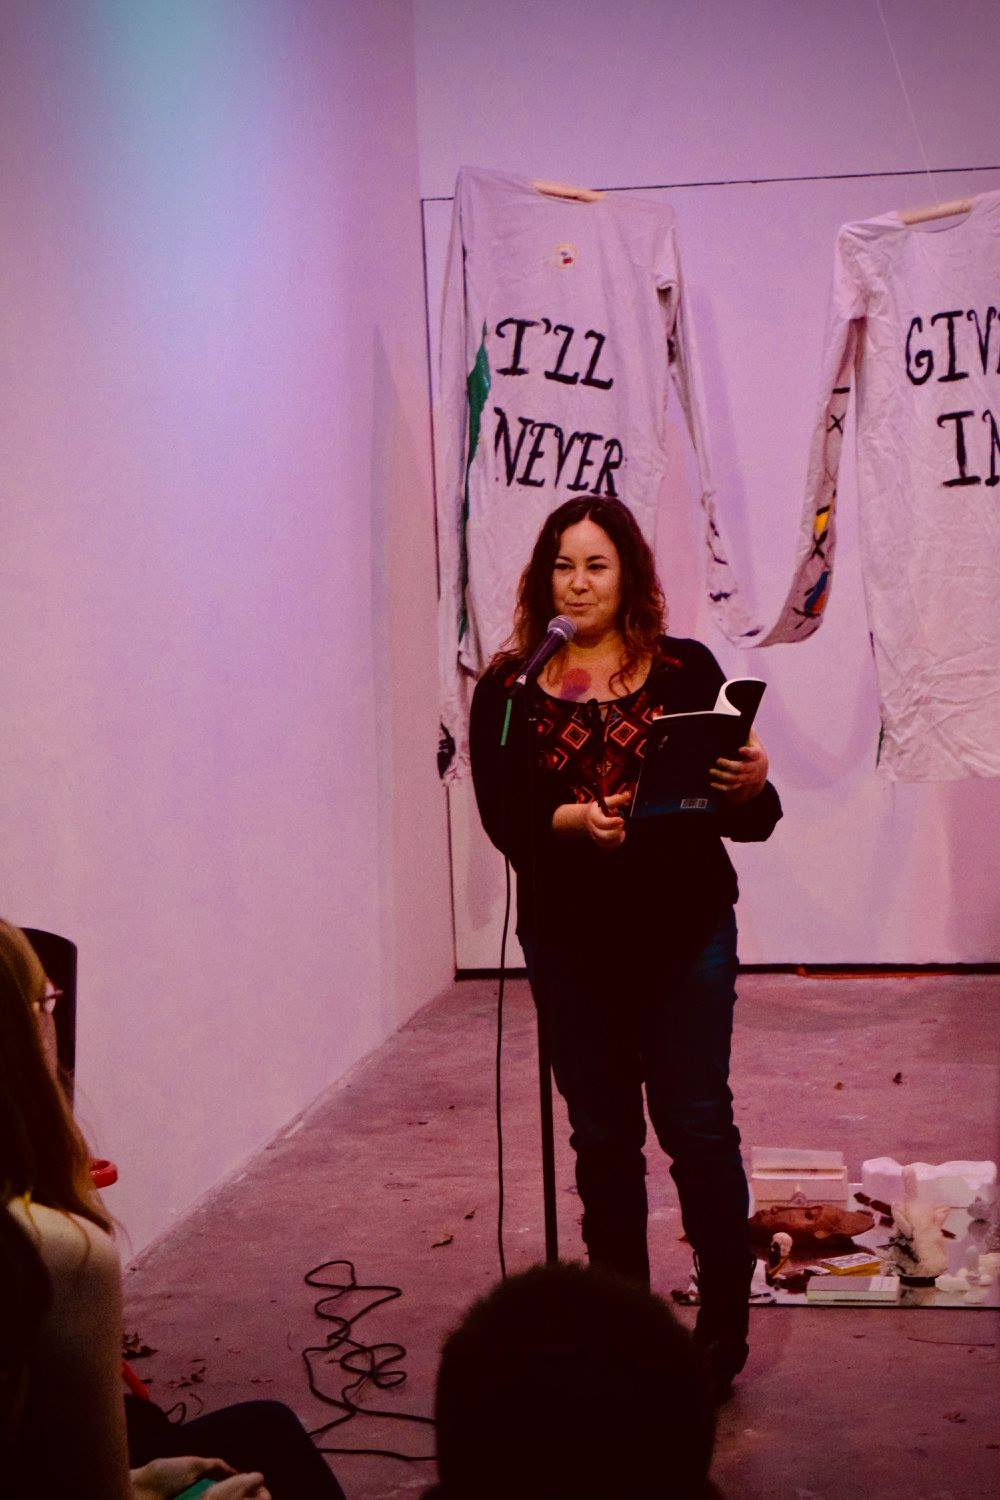 Lisa Olstein is the author of four poetry collections including her latest work,  Late Empire  which she is pictured here reading from.